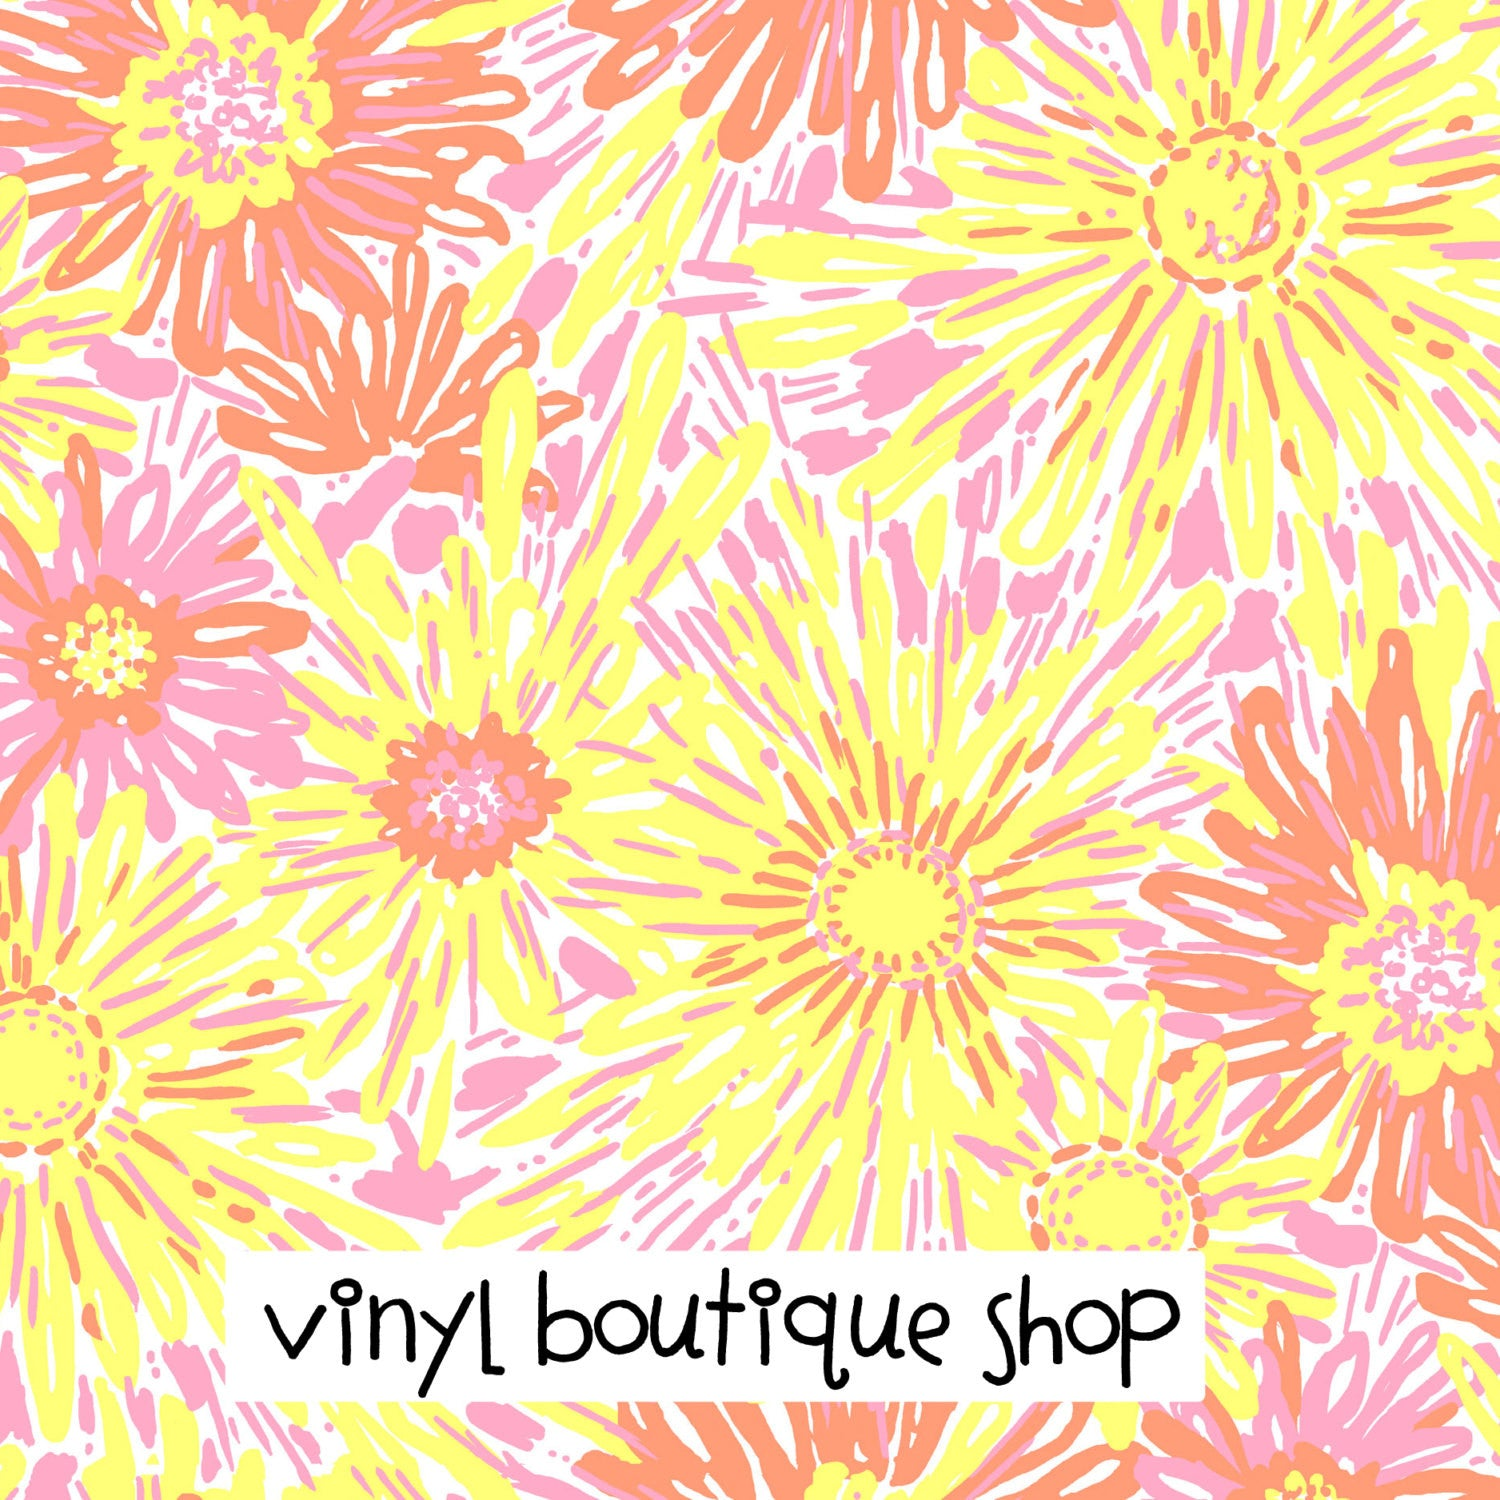 Sunkissed Yellow Orange Lilly Inspired Printed Patterned Craft Vinyl - Vinyl Boutique Shop